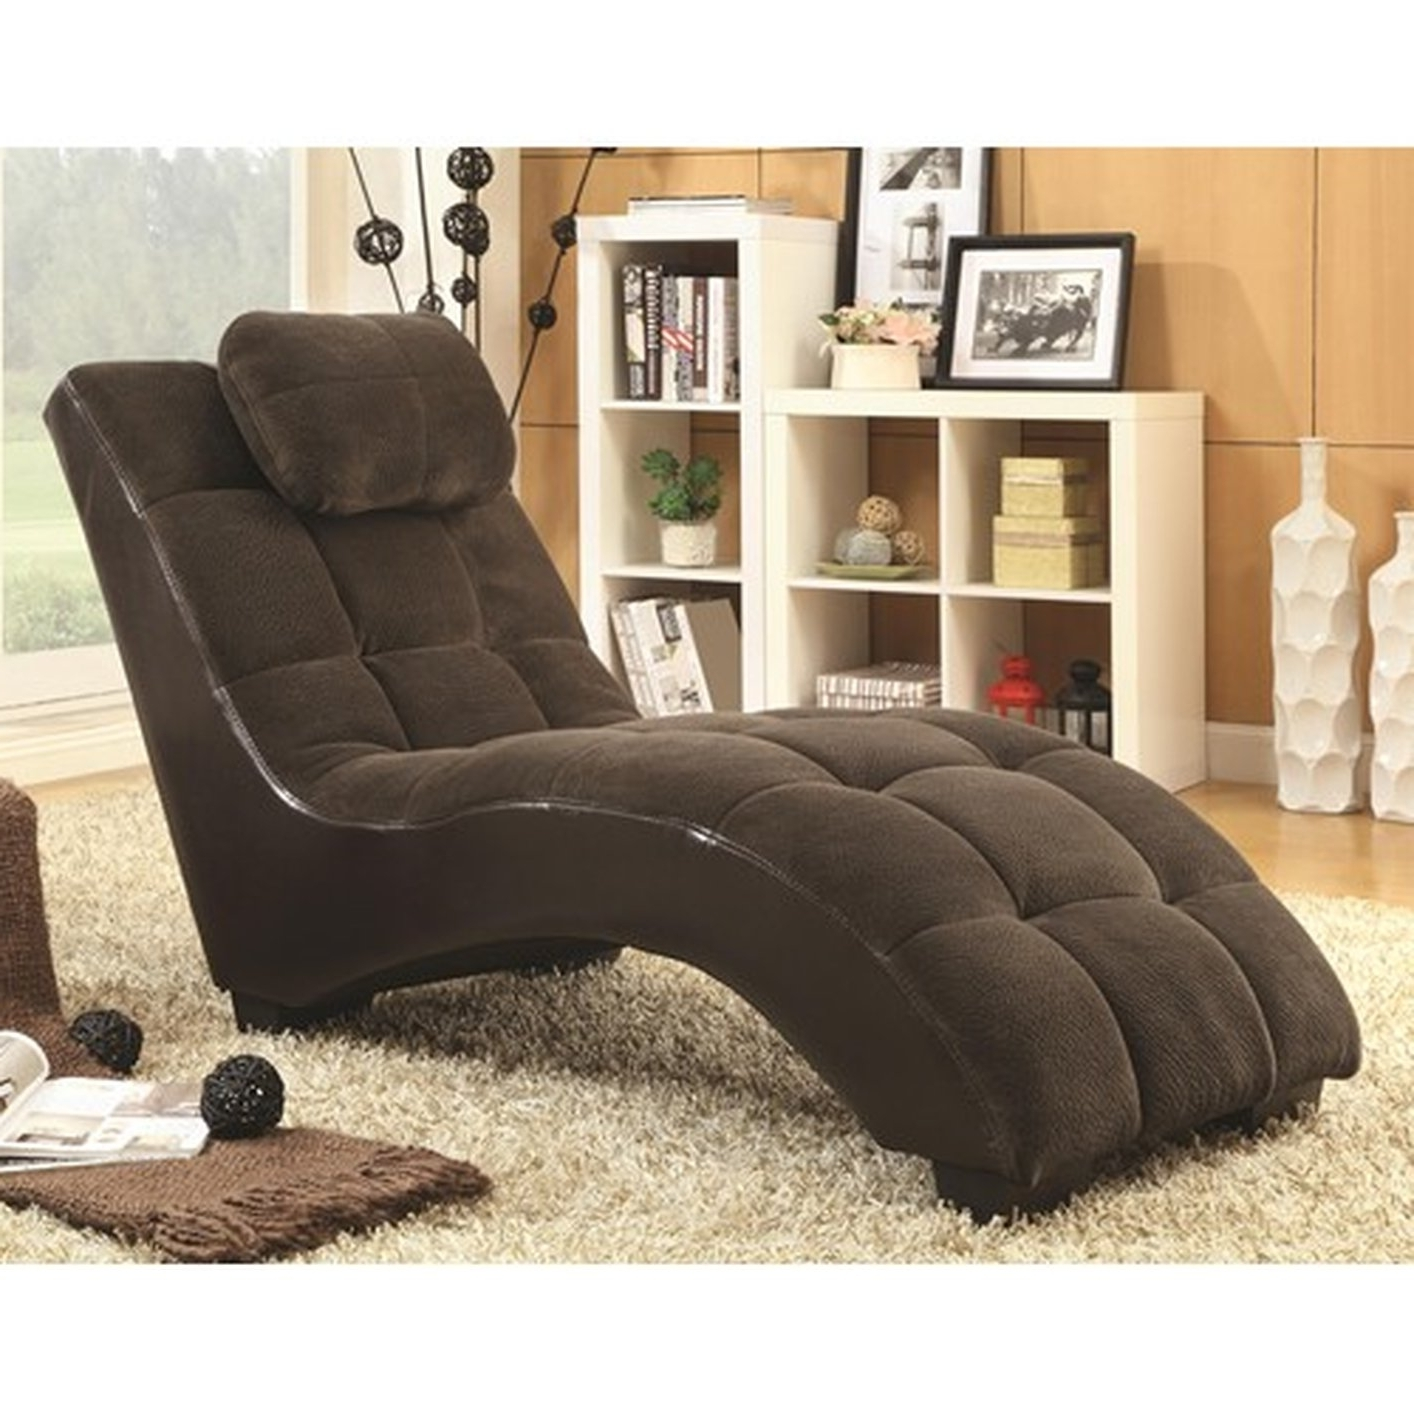 Well Known Fabric Chaise Lounges Pertaining To Brown Fabric Chaise Lounge – Steal A Sofa Furniture Outlet Los (View 3 of 15)